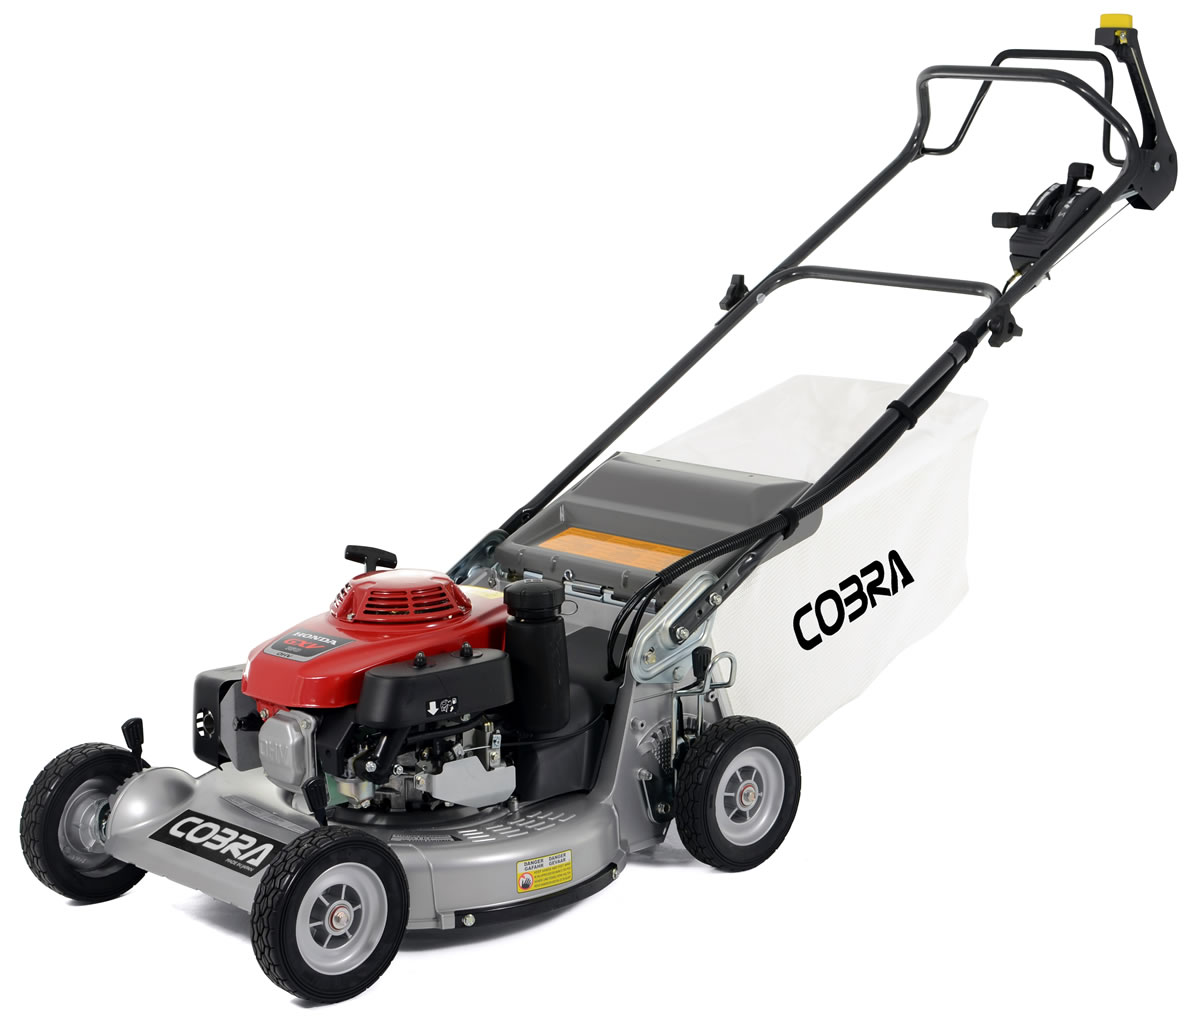 cobra m53sph petrol lawn mower garden machinery. Black Bedroom Furniture Sets. Home Design Ideas